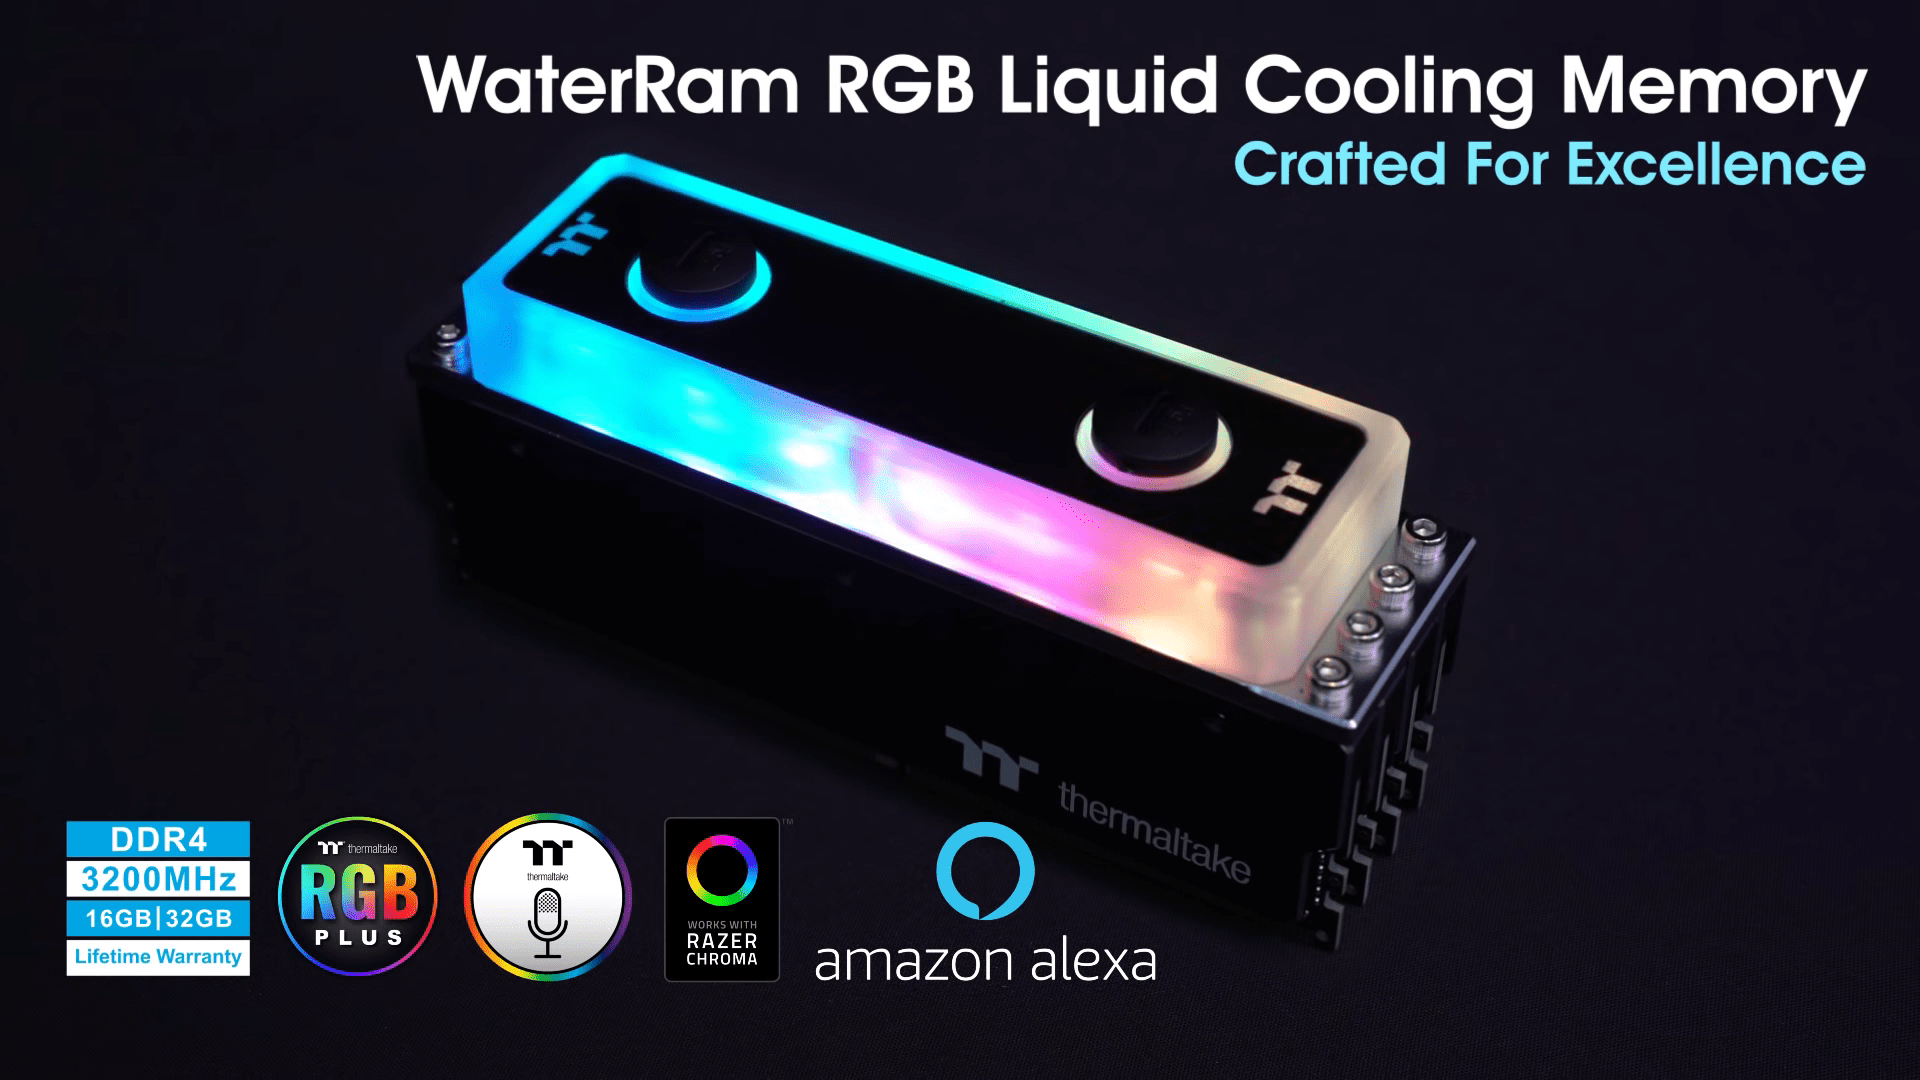 Thermaltake WaterRam RGB Liquid Cooling DDR4 Memory: The World's First Two-Way Cooling DDR4 Memory Is Here